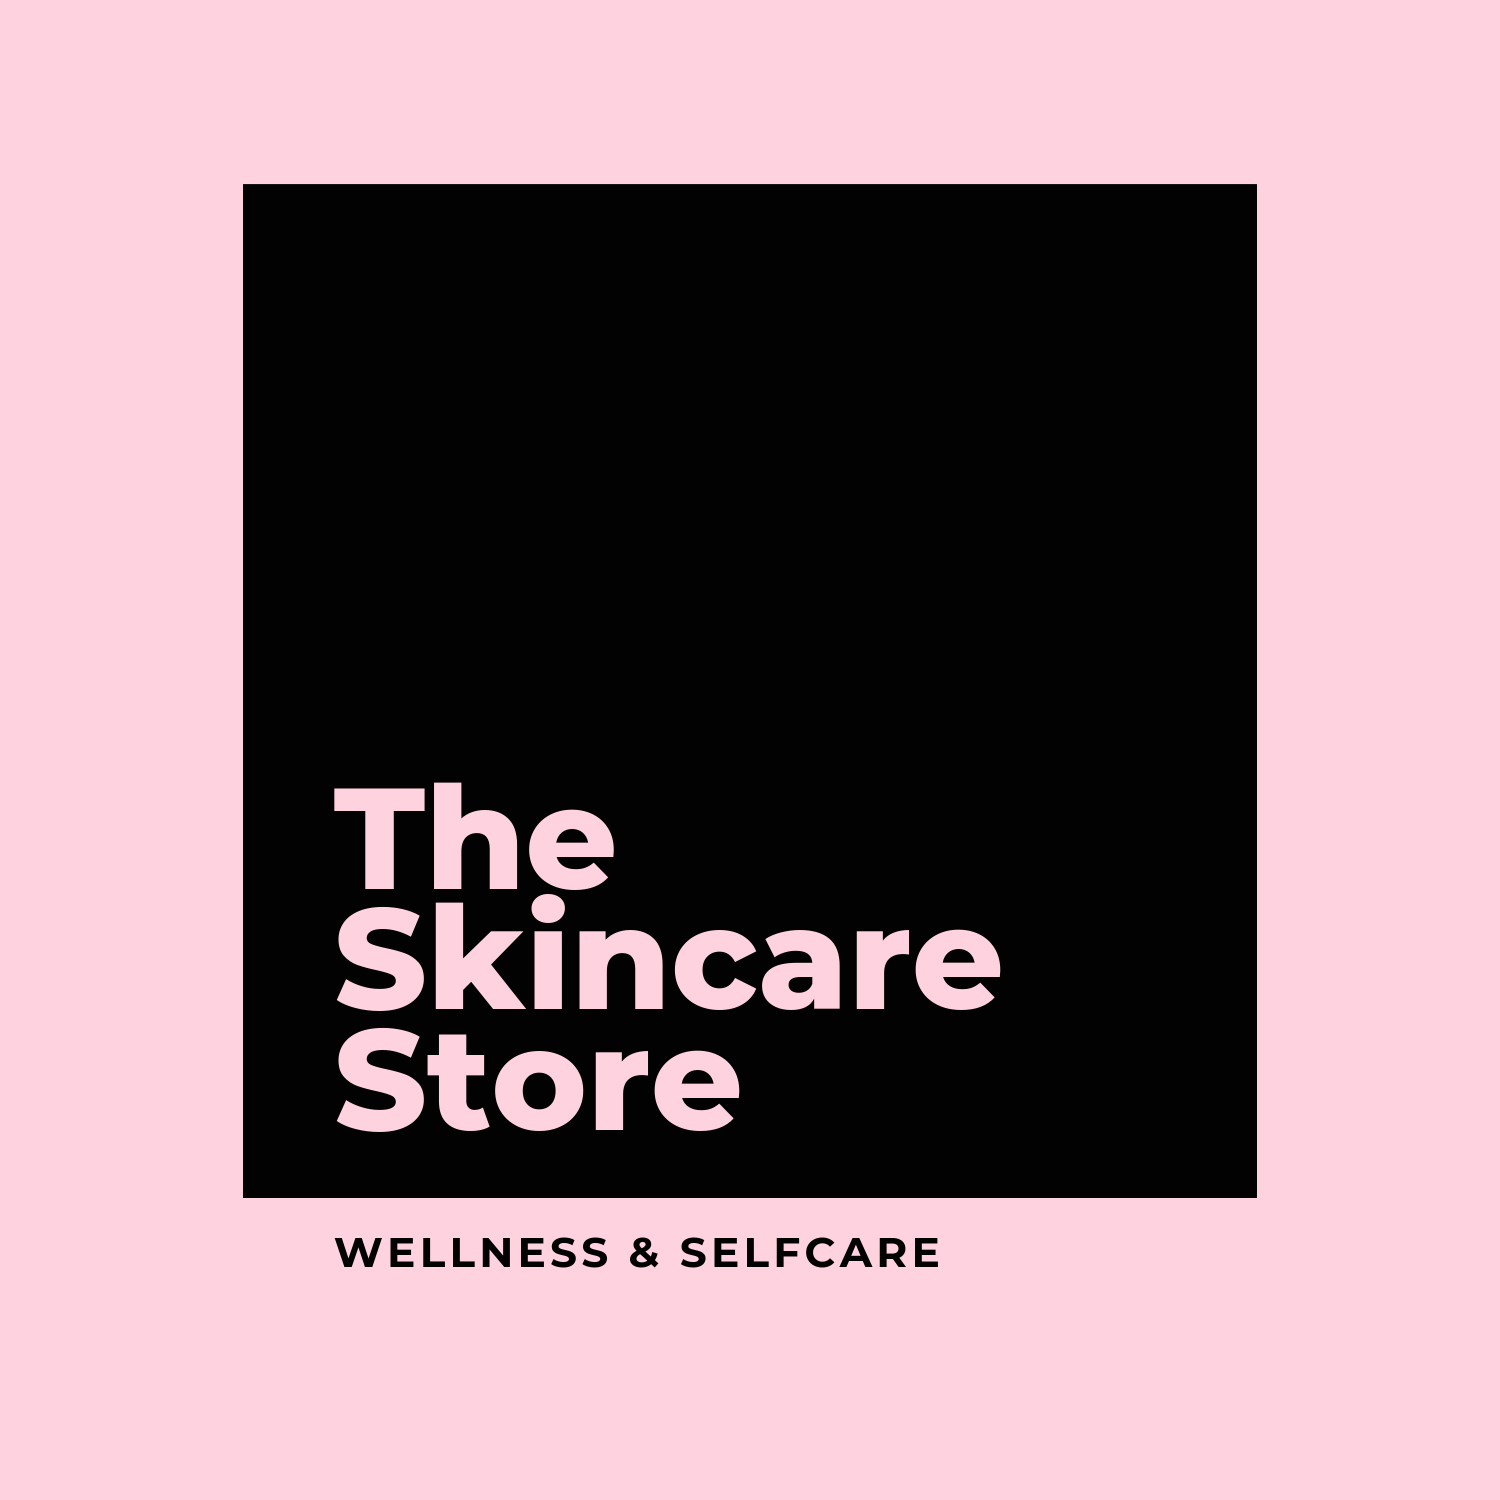 The Skincare Store